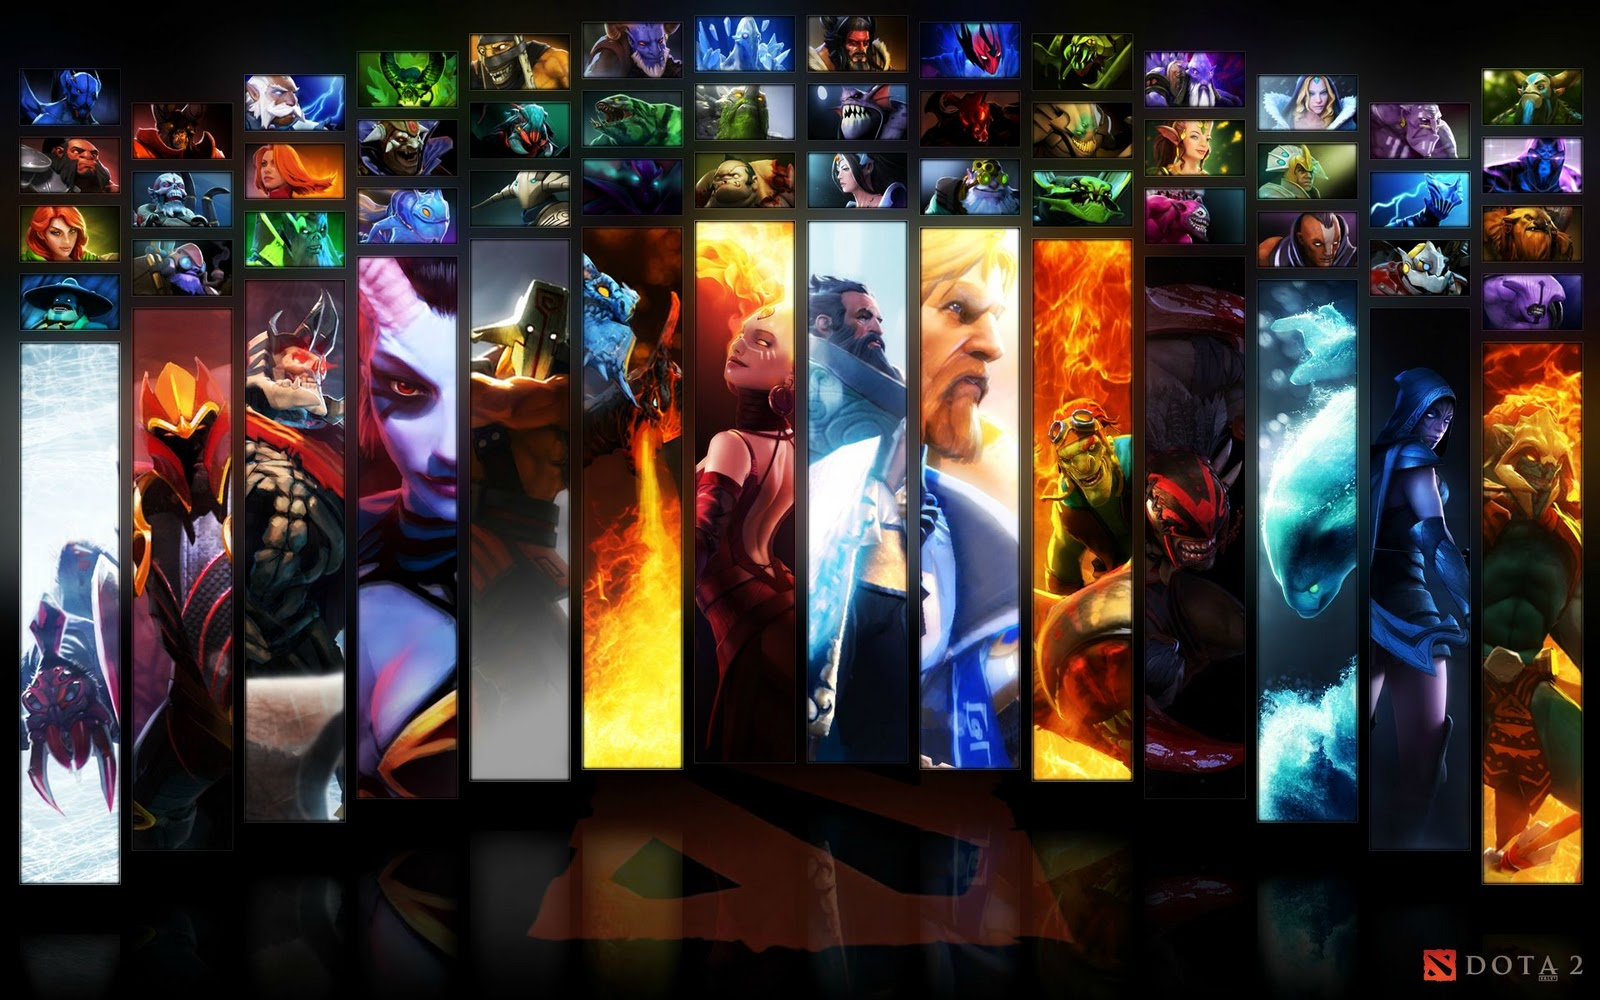 Google themes dota 2 - Aliexpress Com Buy Dota 2 Hot Video Game Fabric Poster 20x13 Print 01 From Reliable Game Fabric Suppliers On Freestyle Poster Shop